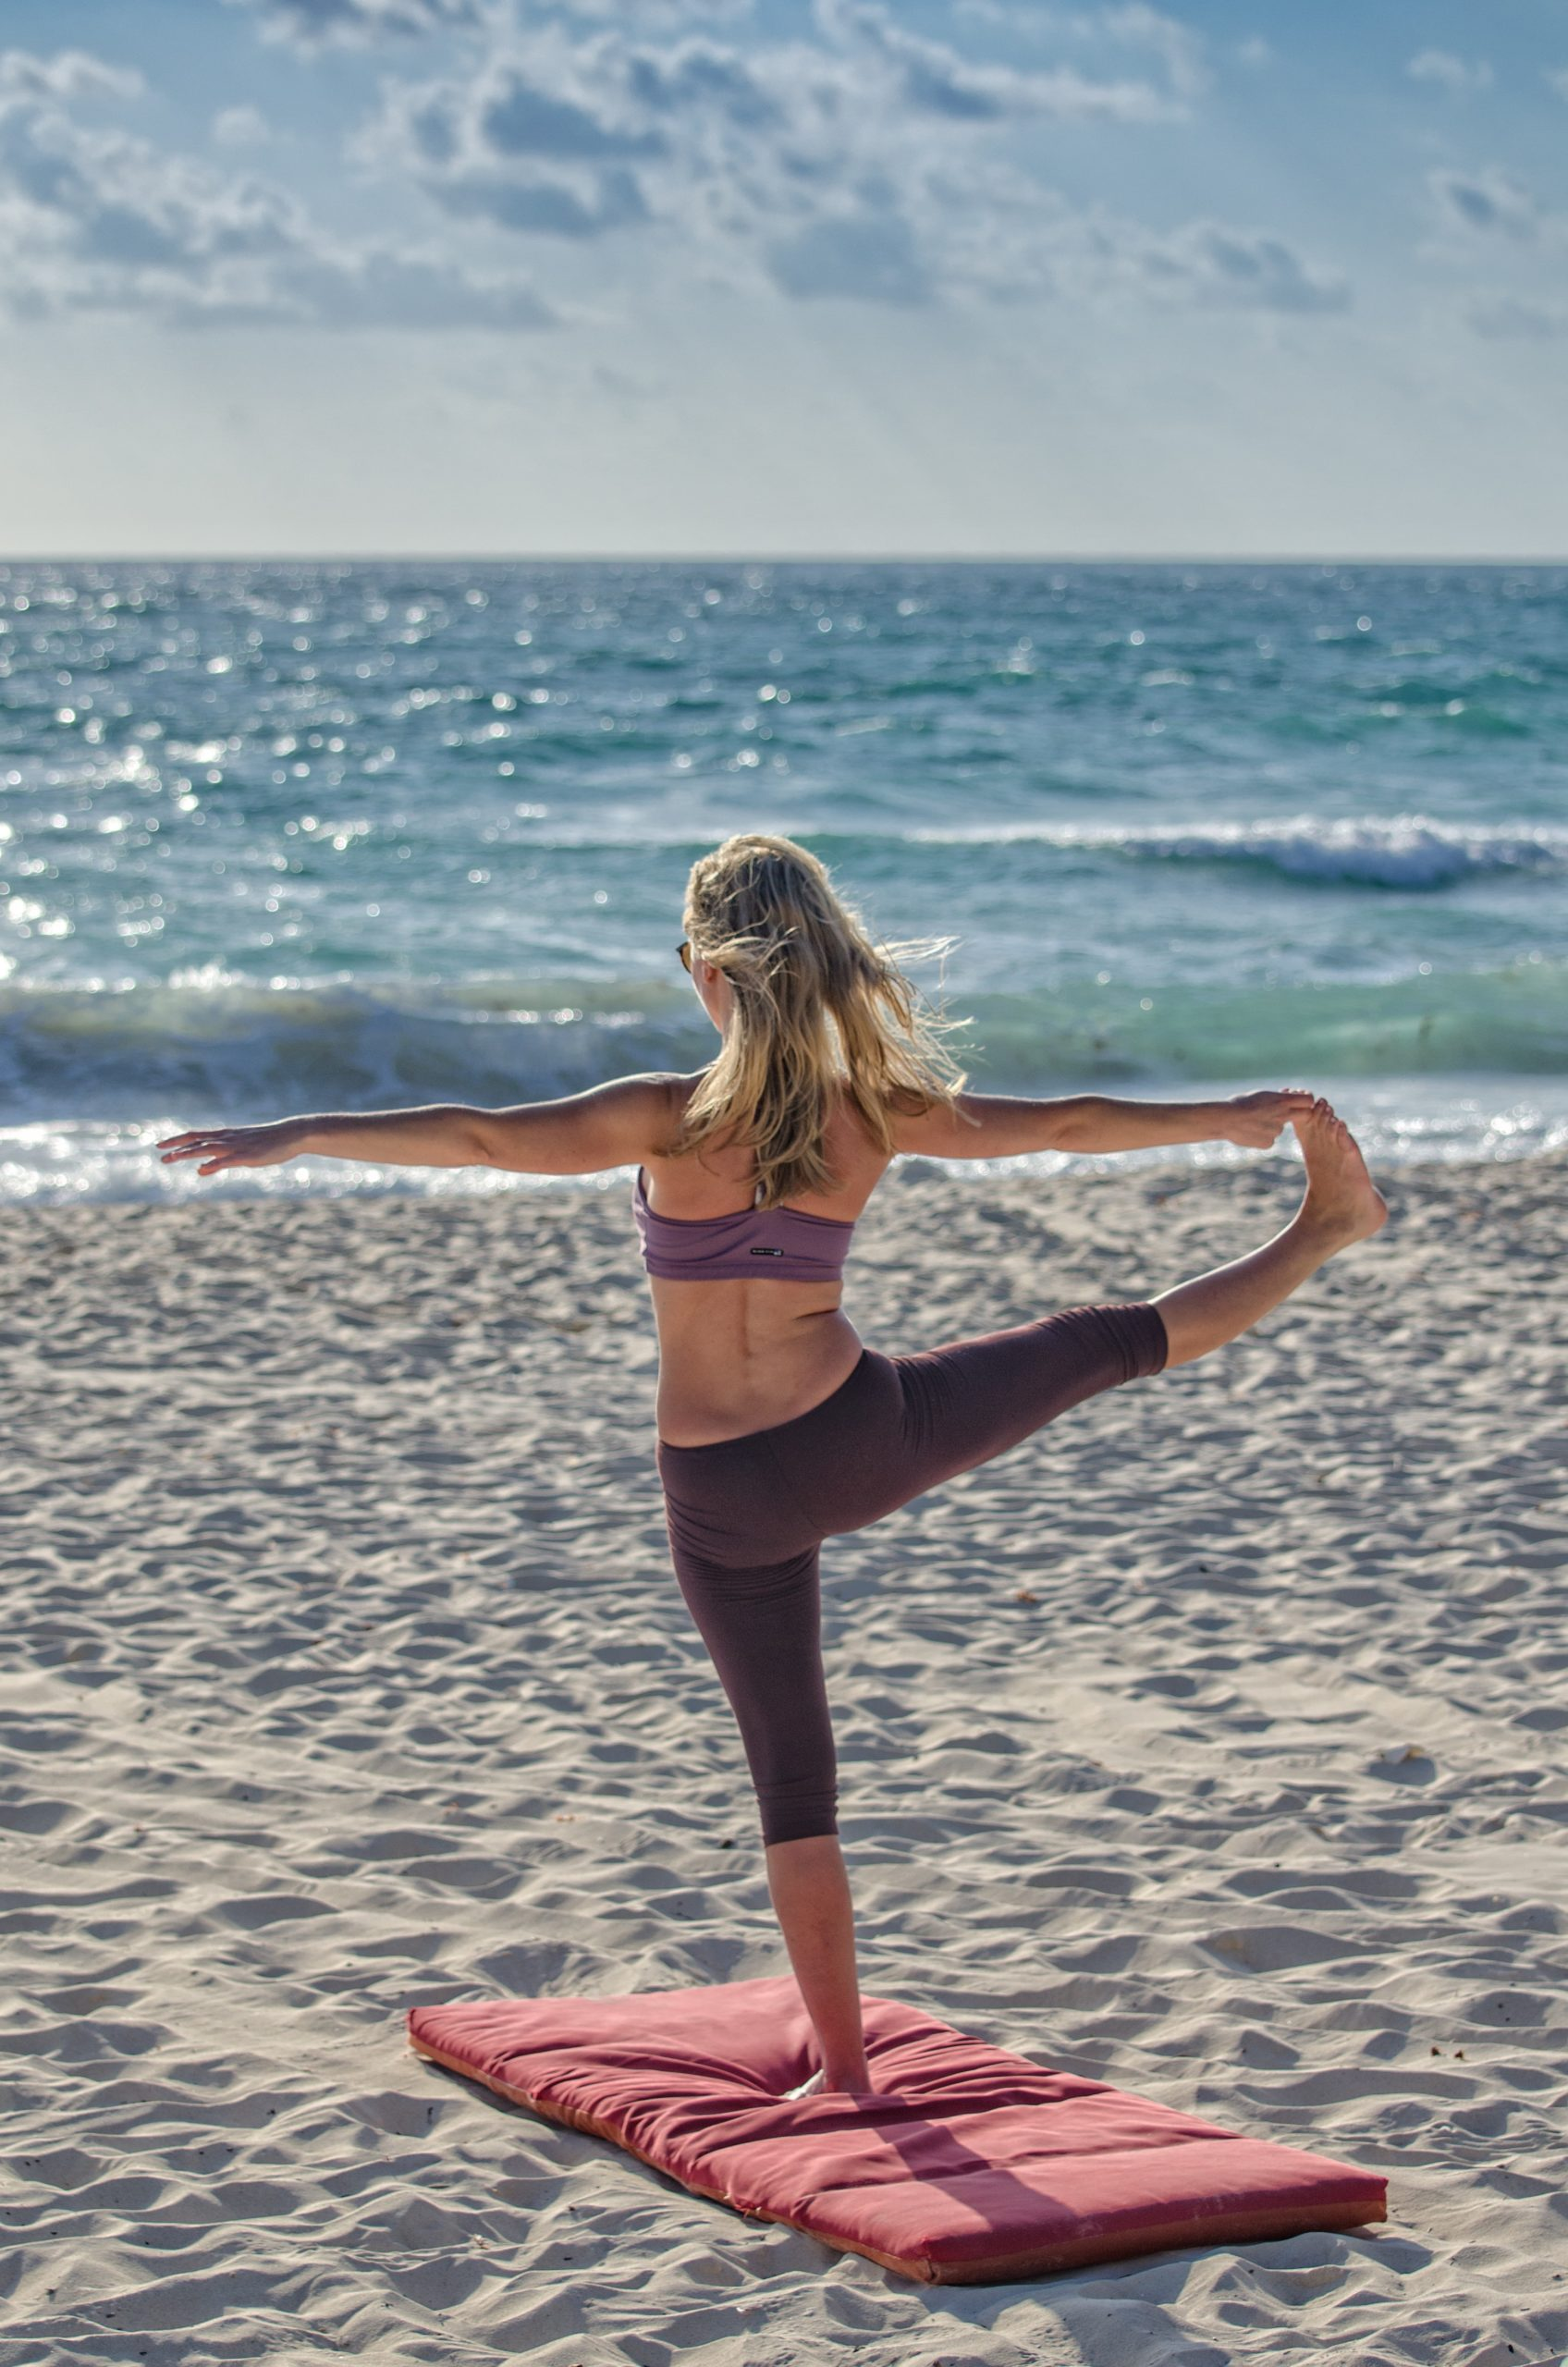 25 Women Fitness Motivational Quotes To Boost Self-Confidence